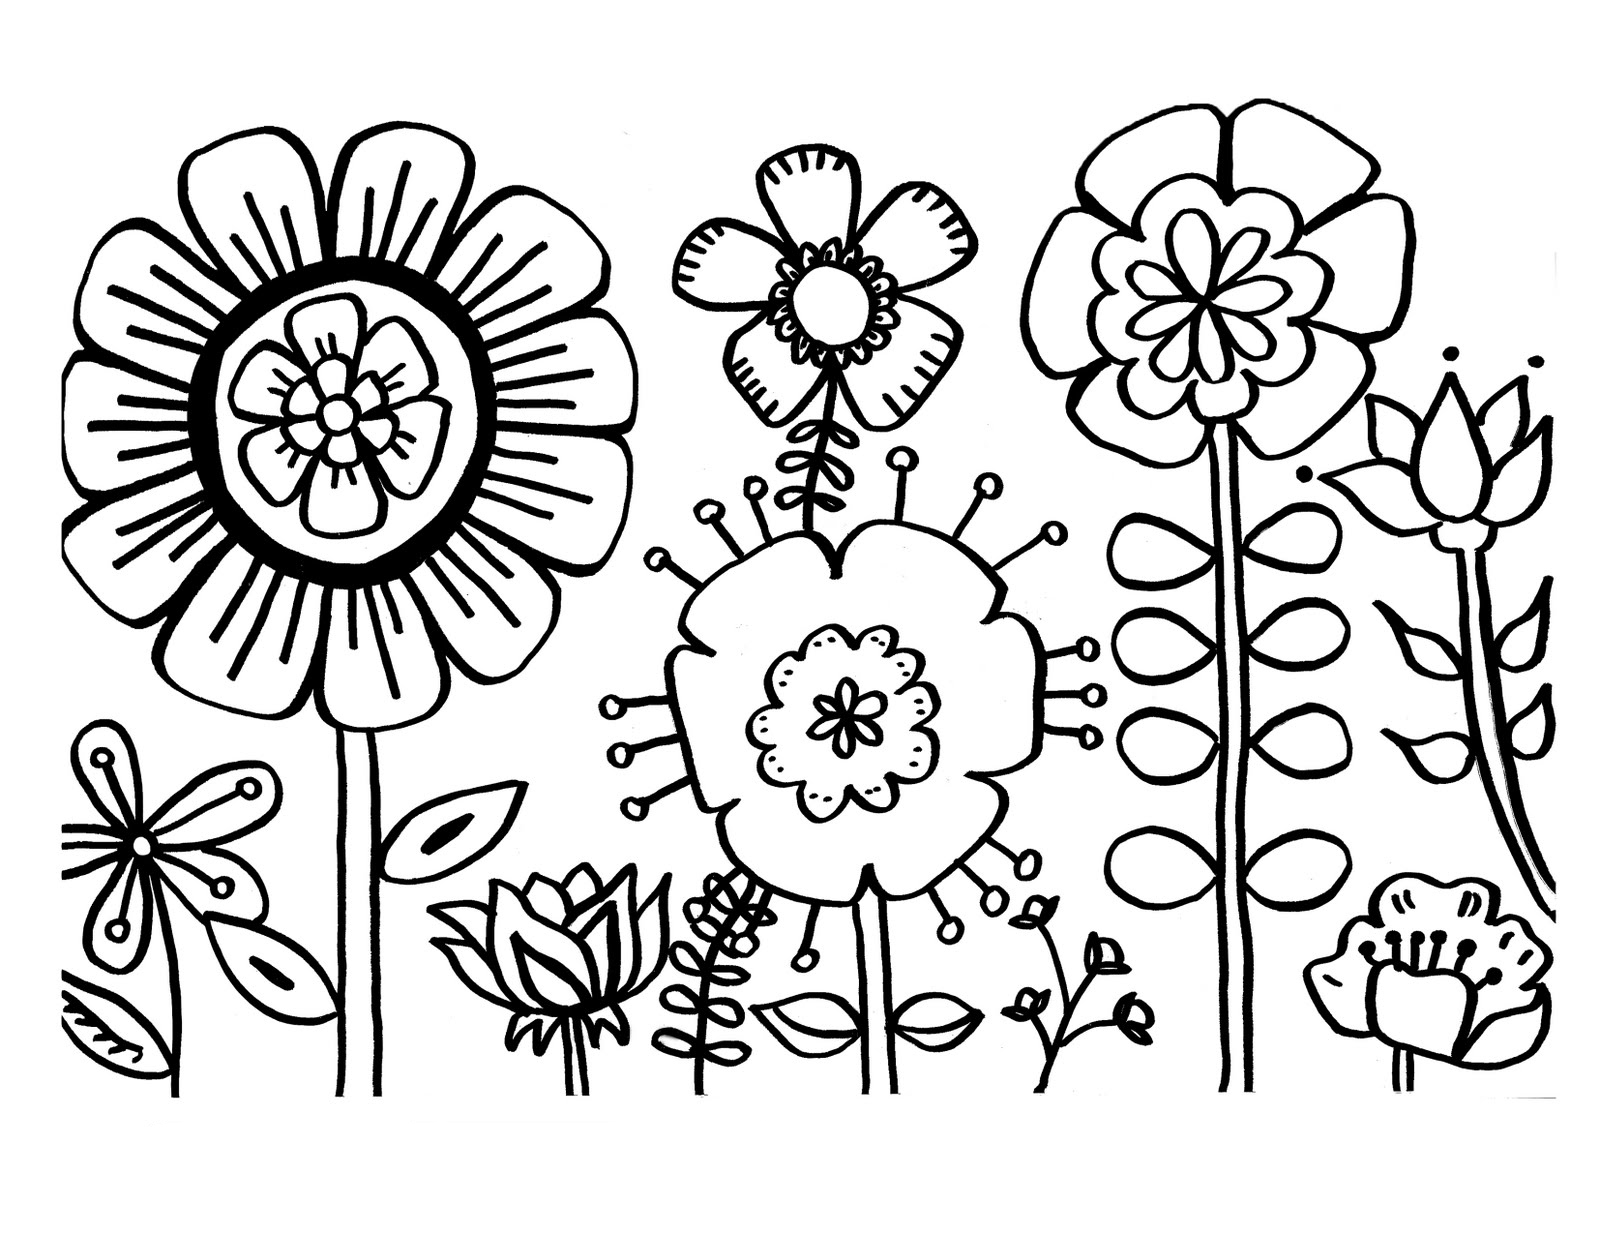 Printable Flower Coloring Pages For Girls   Novocom.top